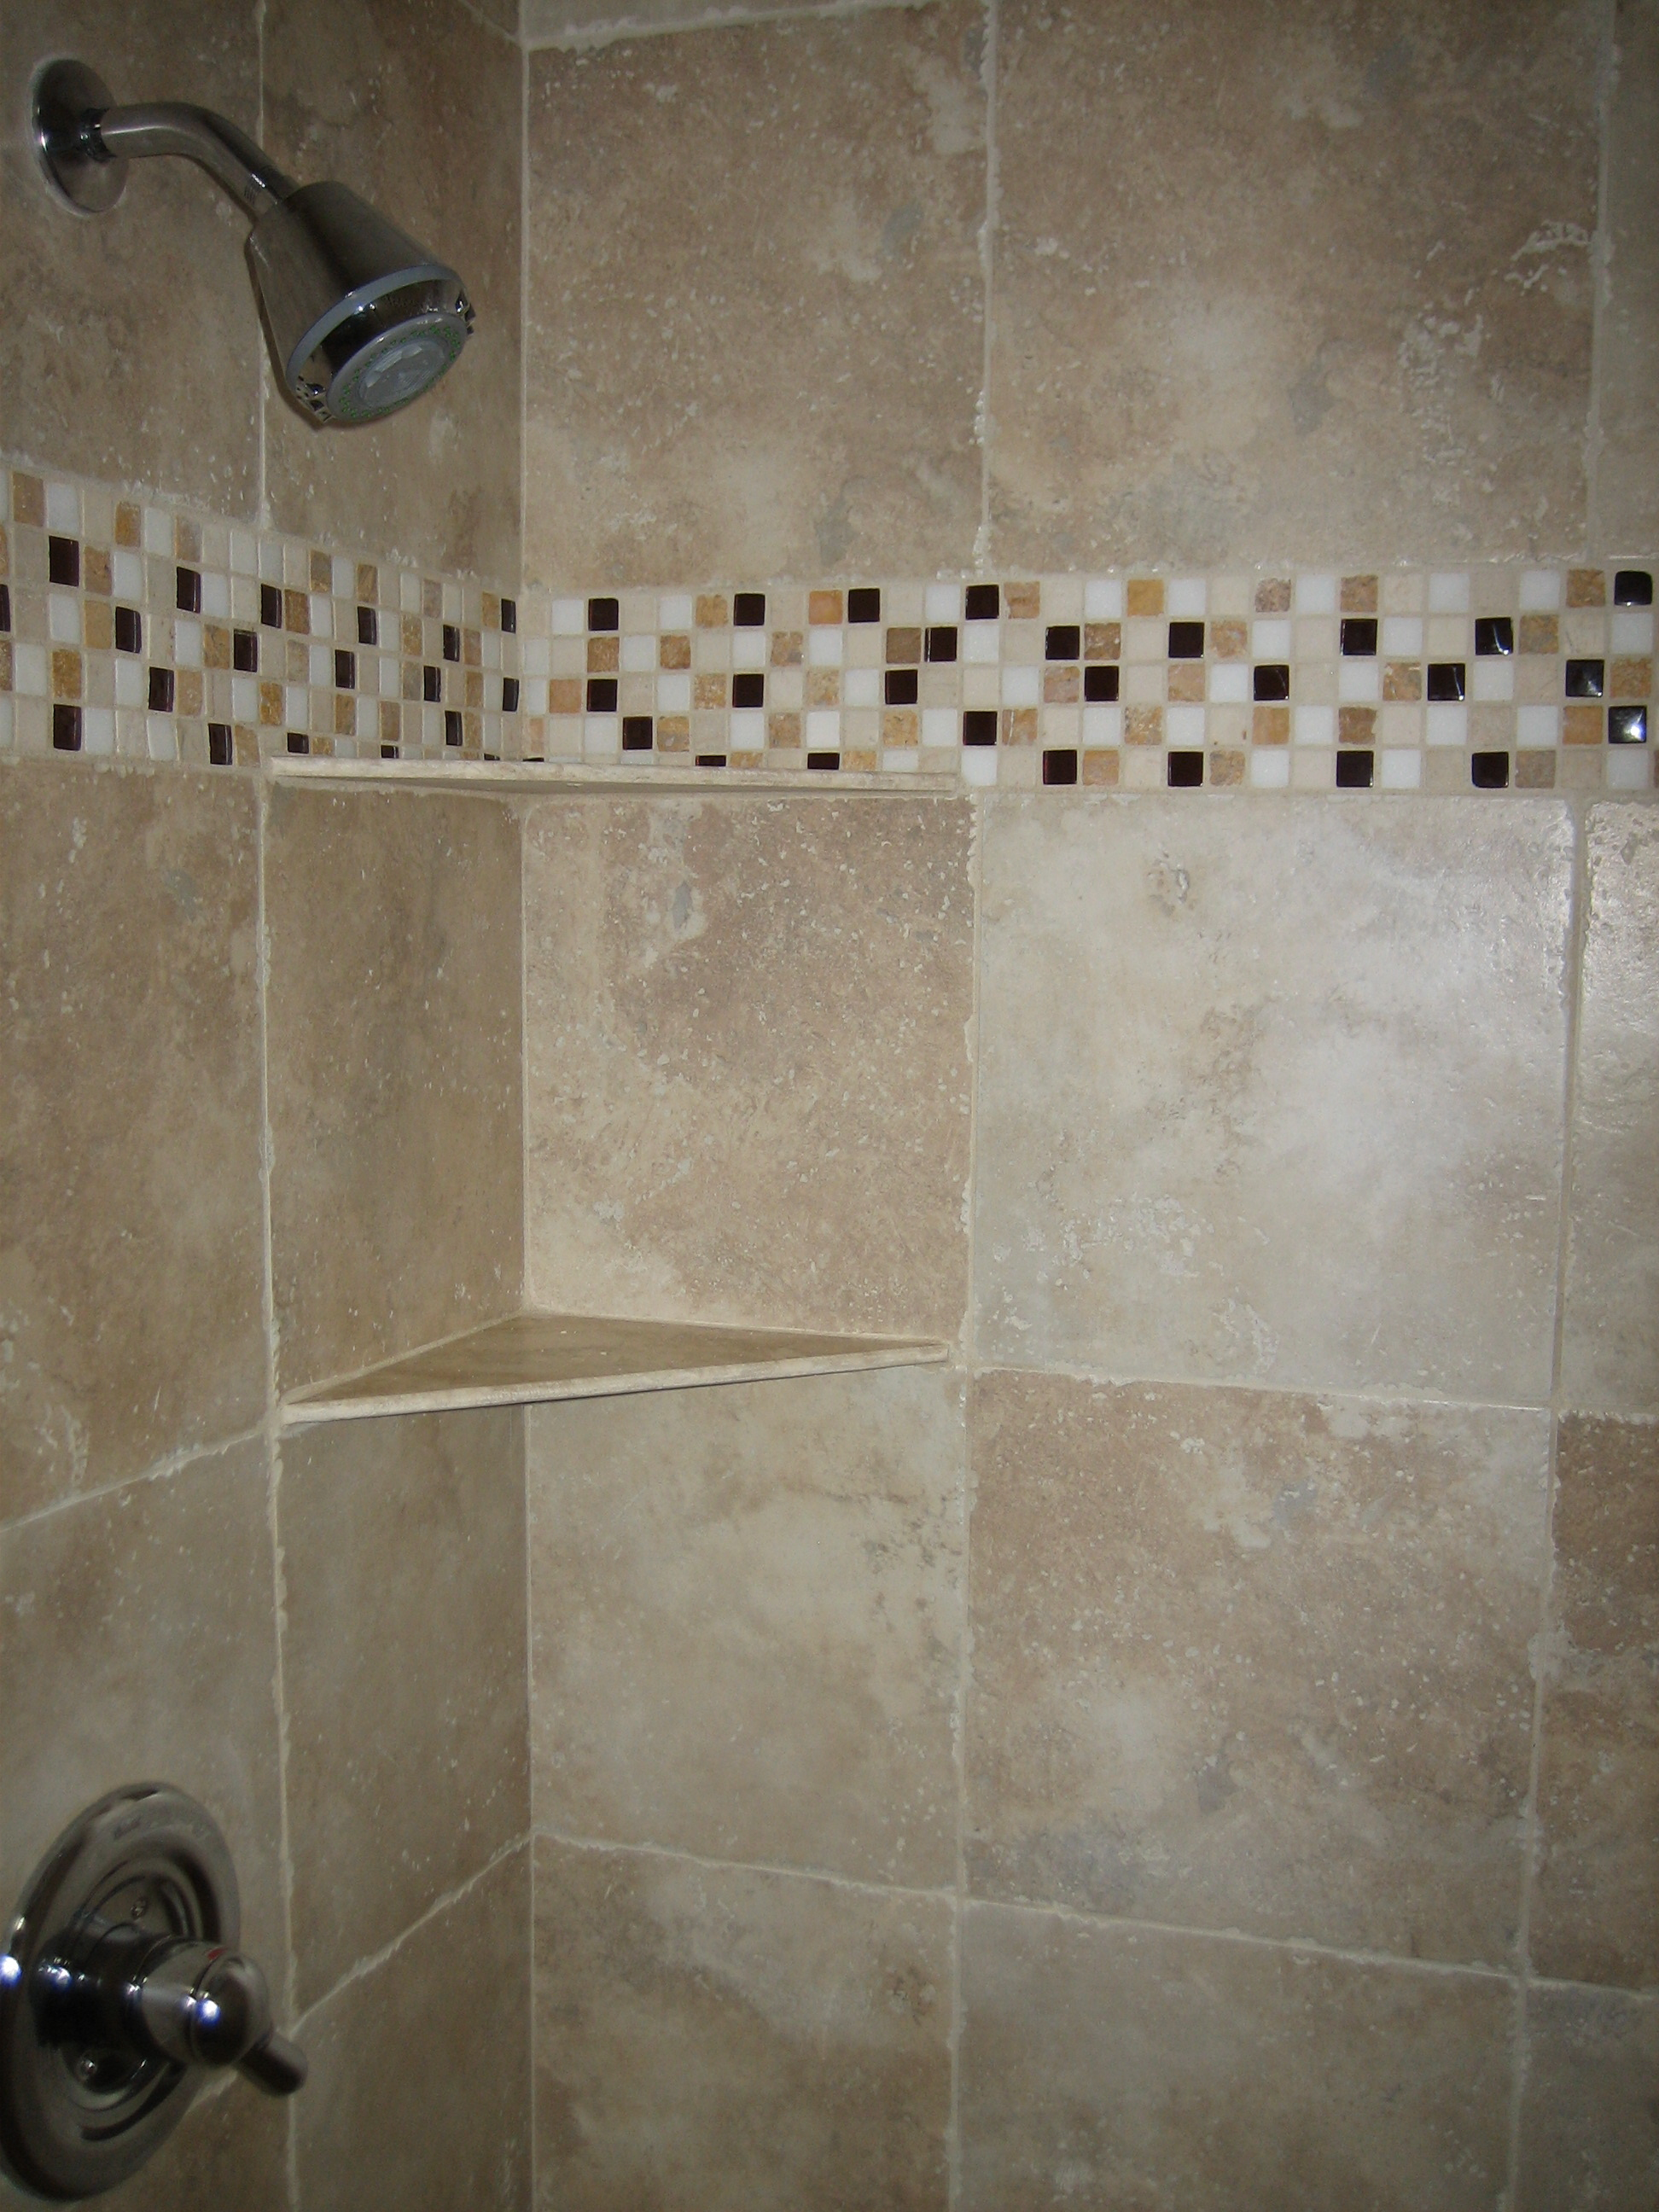 bathroom-inspiration-incredible-mosaic-ceramic-striped-patterns-with-neutral-shower-tile-ideas-as-well-as-chrome-wall-head-shower-and-corner-seating-shower-ideas-supreme-shower-tile-ideas-and-bathroo